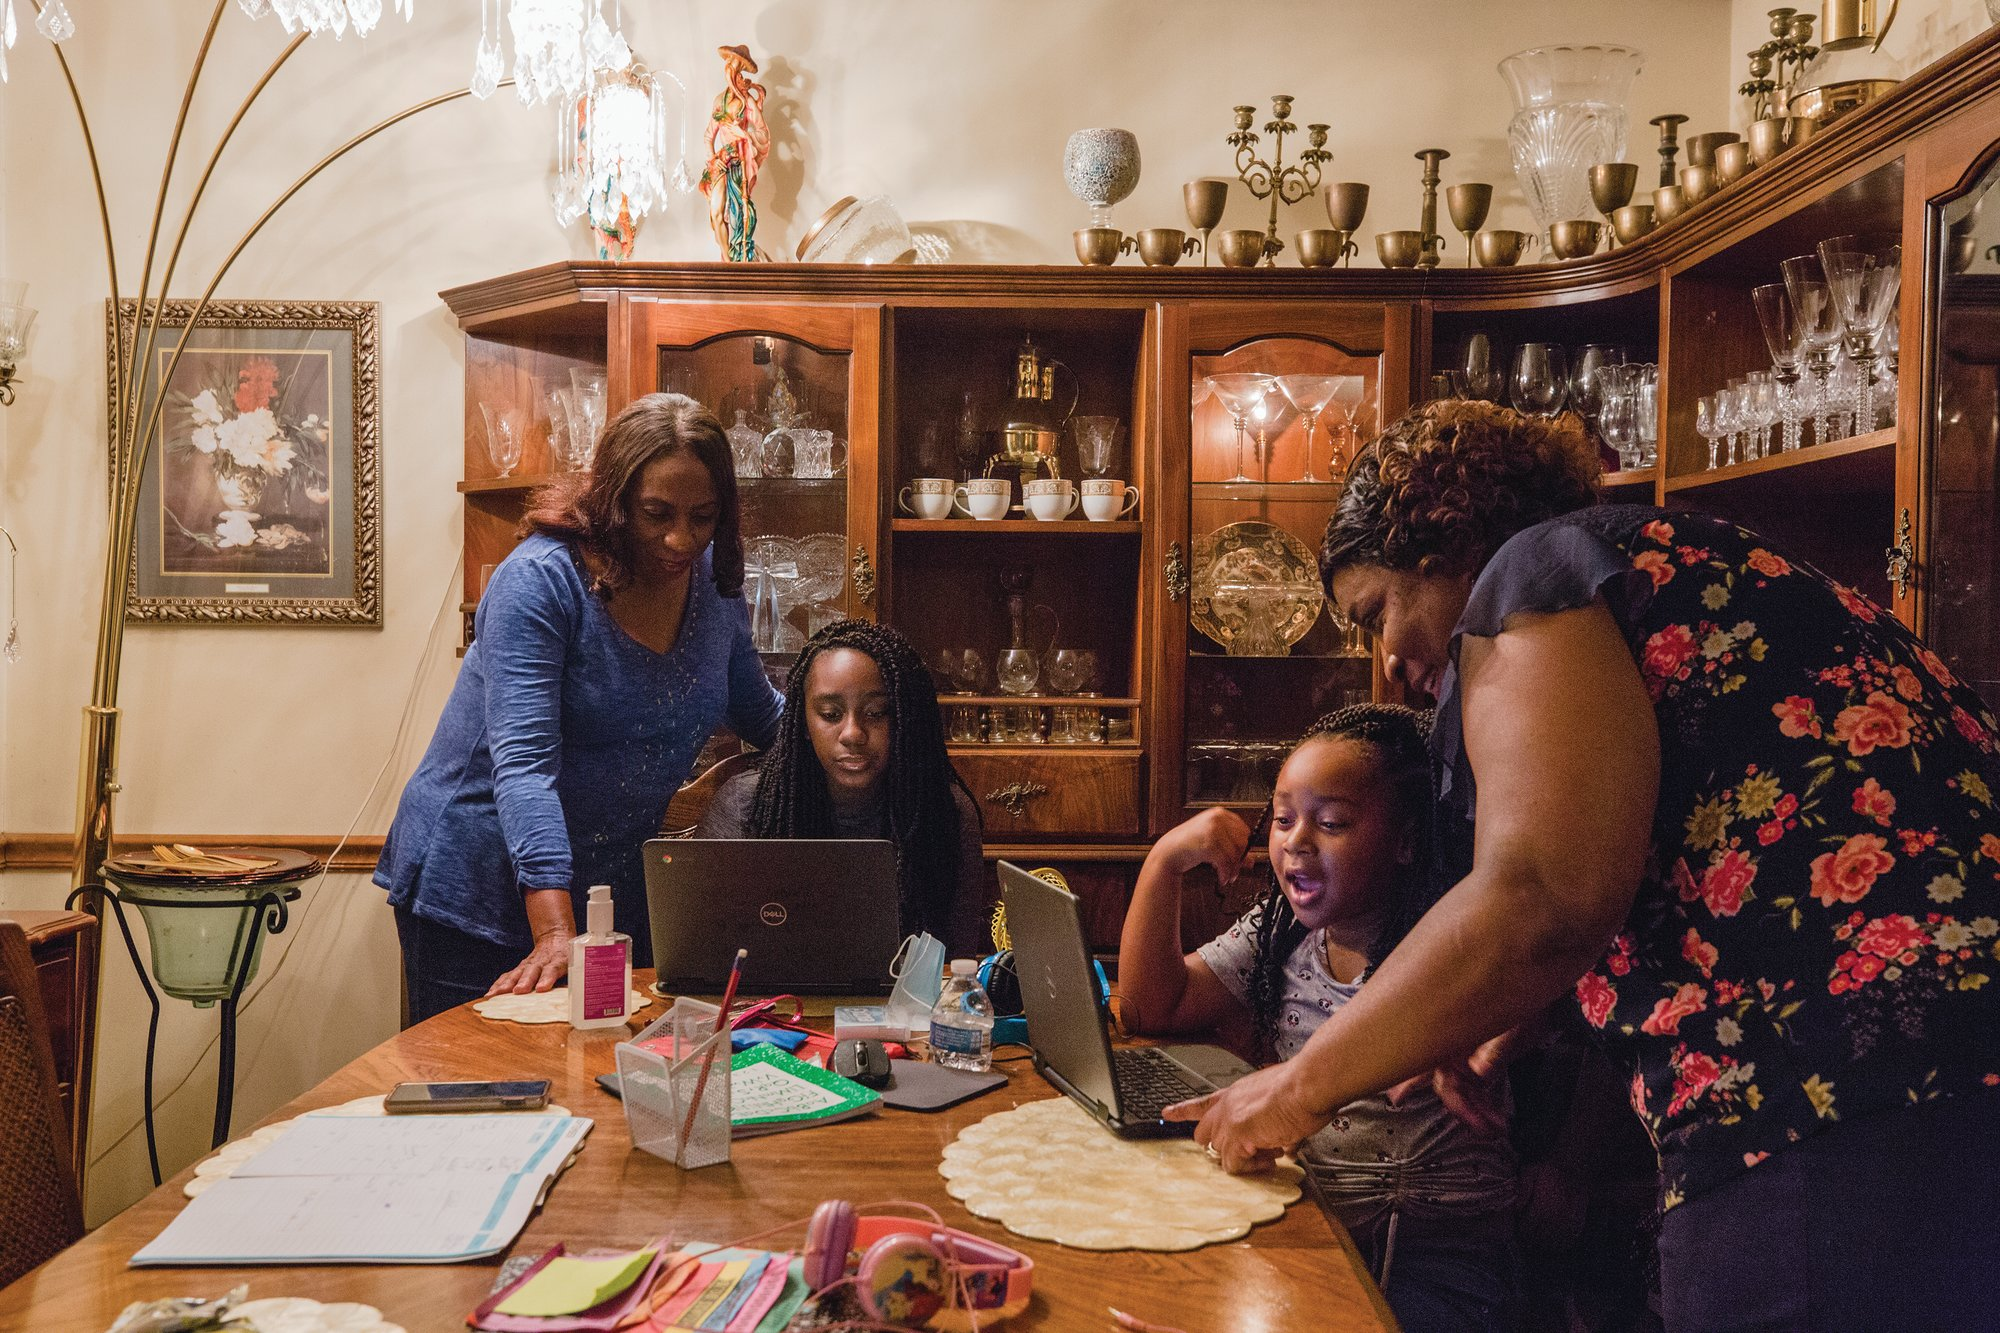 SUMTER ITEM FILE PHOTOAubrielle Burk, a first grader at Millwood Elementary and her sister Gabby Burk, a seventh grader at Bates Middle School, get help from their grandmothers, Gwen Burk and Loretta Brown, on their virtual school assignments at their Gwen's home in 2020.